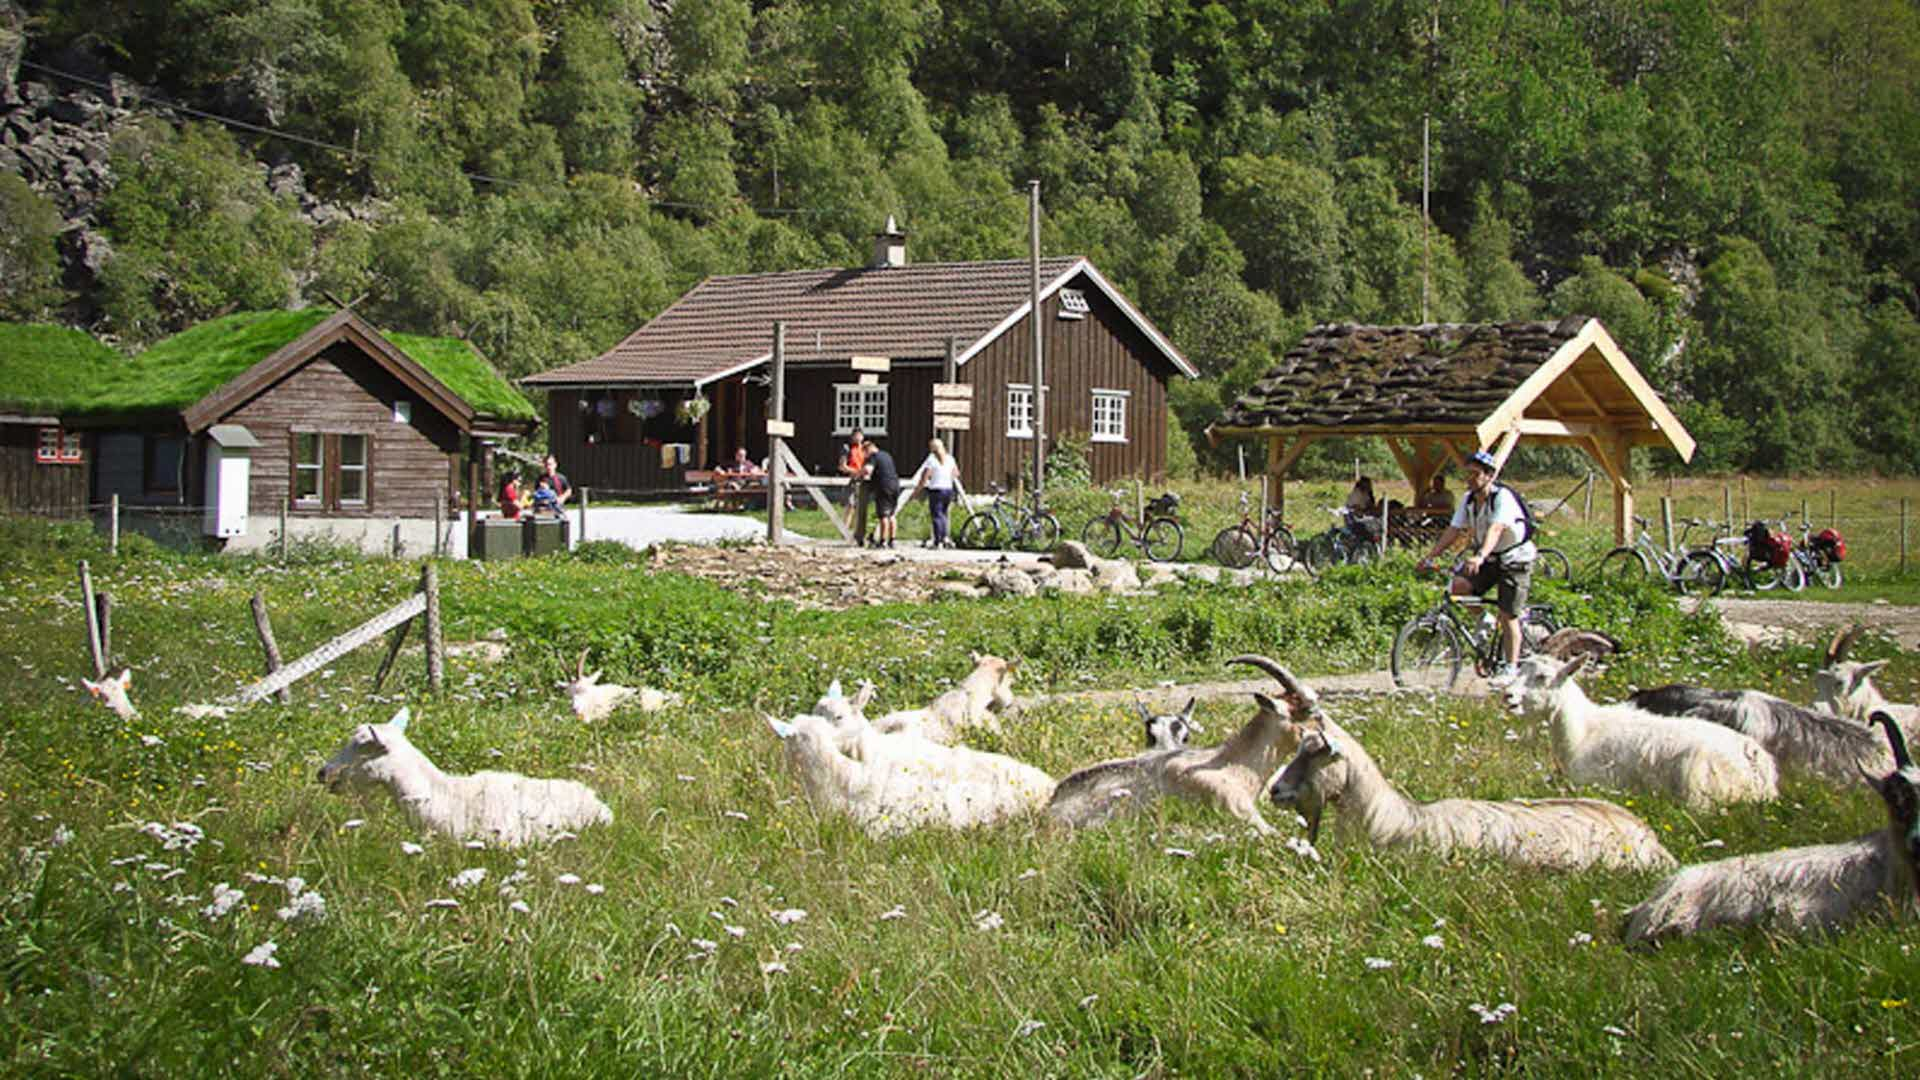 Rallarosa Stølsysteri in Flåmsdalen, people and goats having fun outside